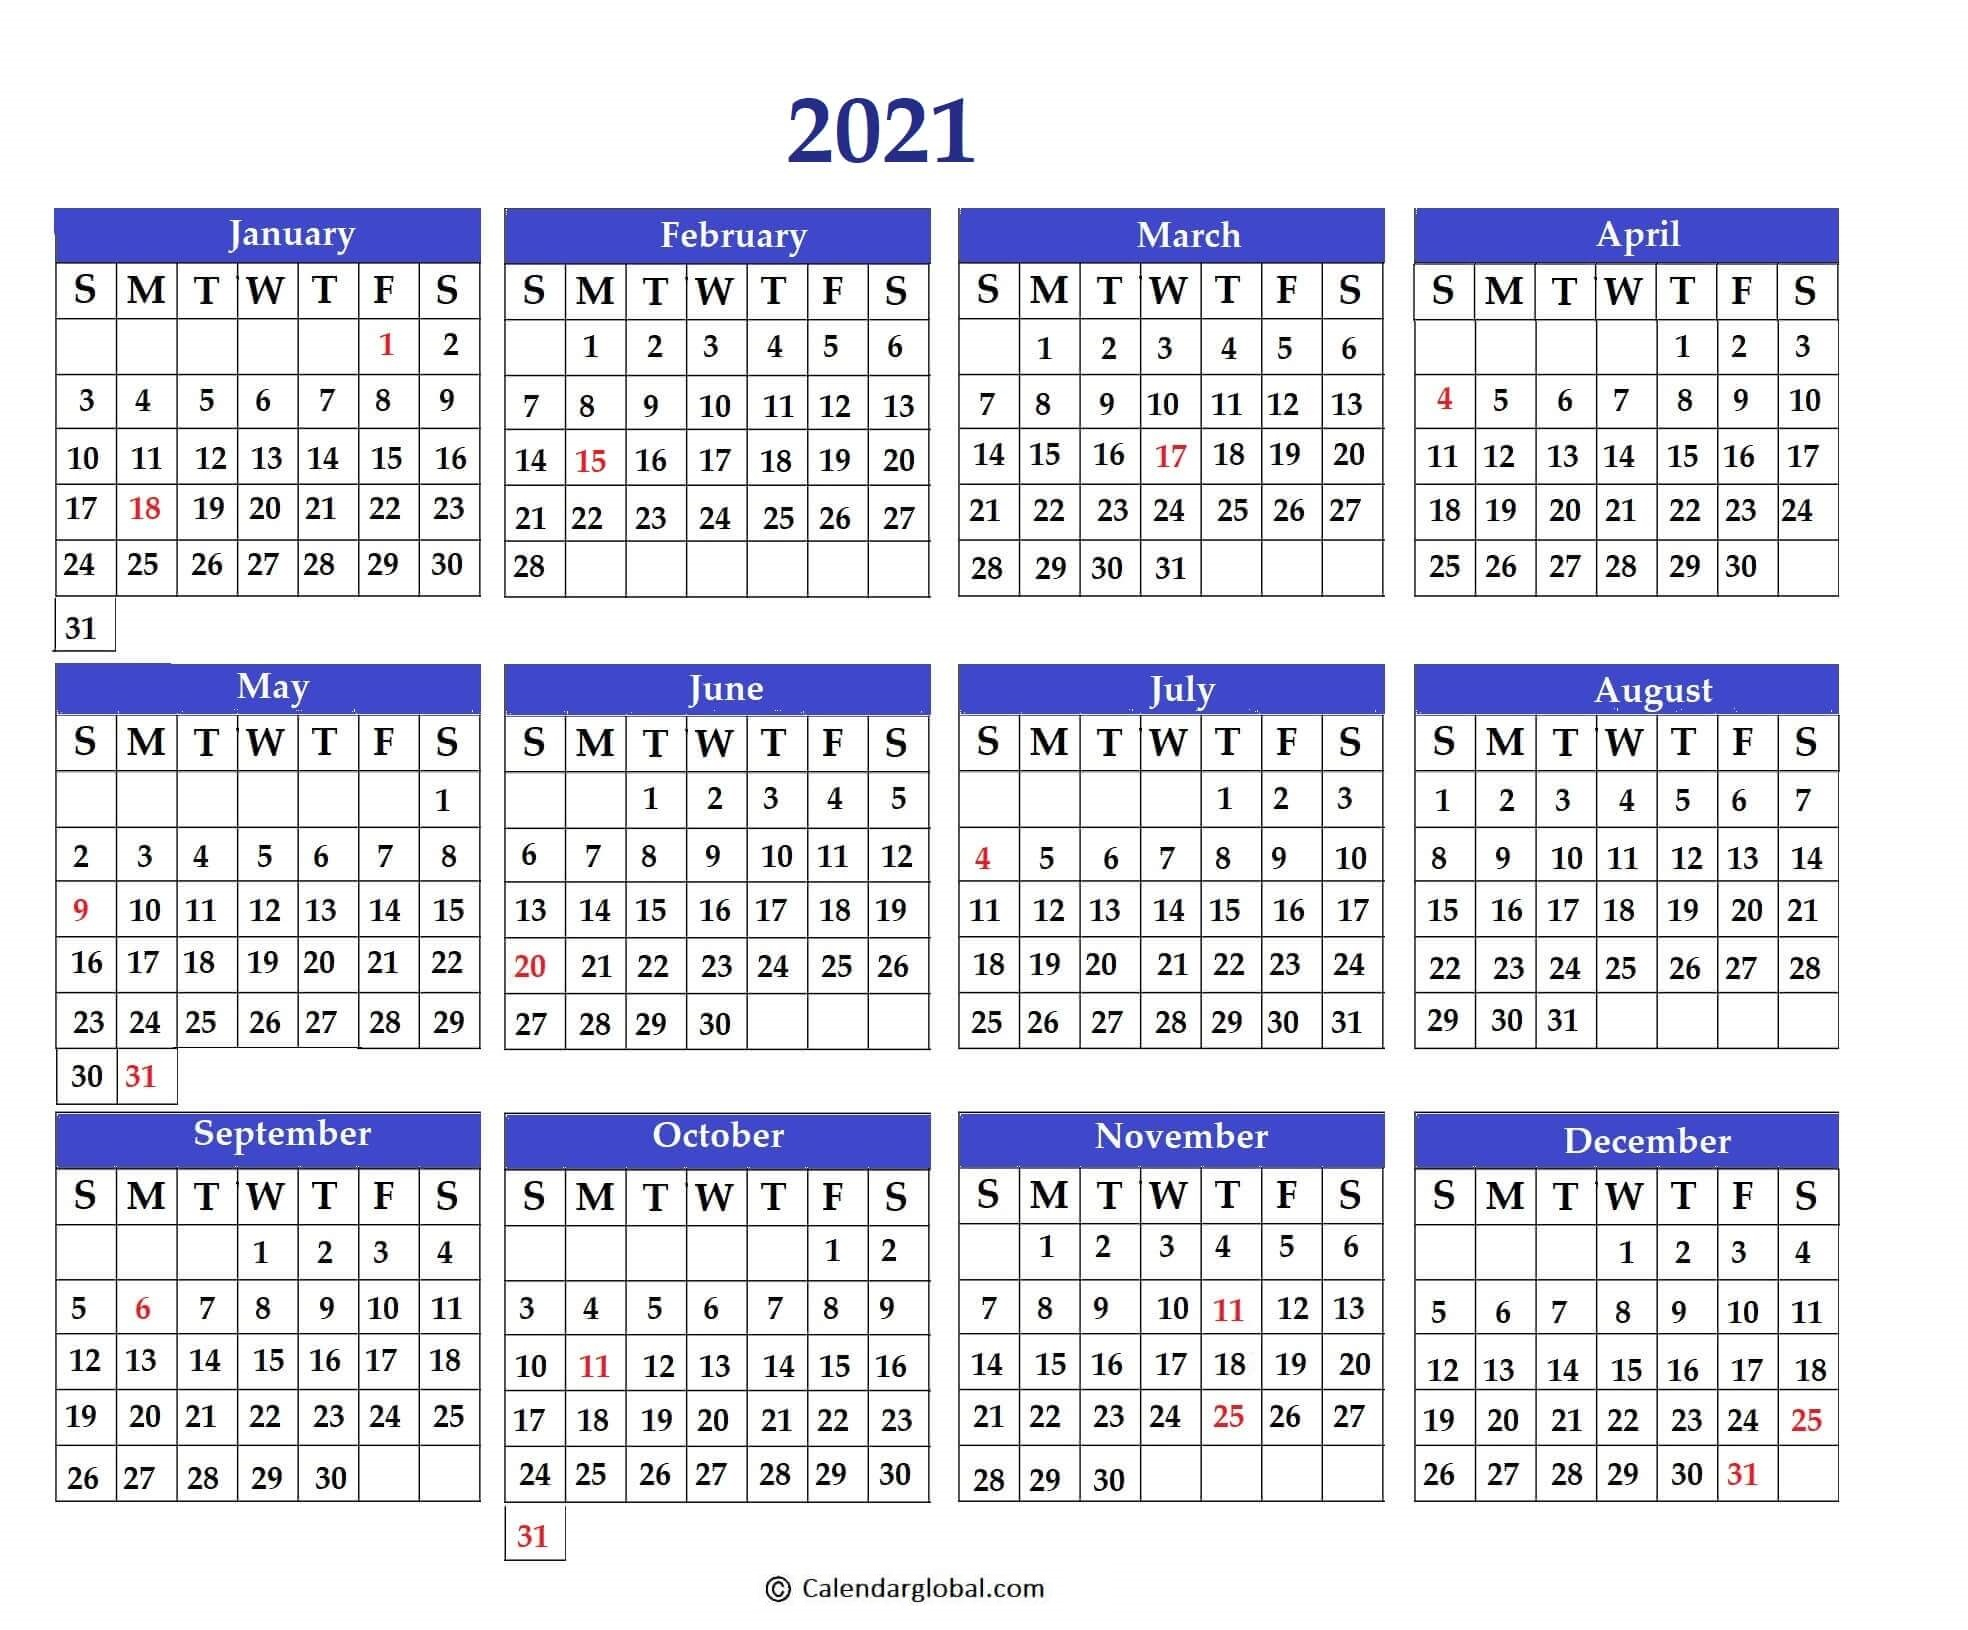 Free Printable 2021 Yearly One Page Calendar - Calendarglobal